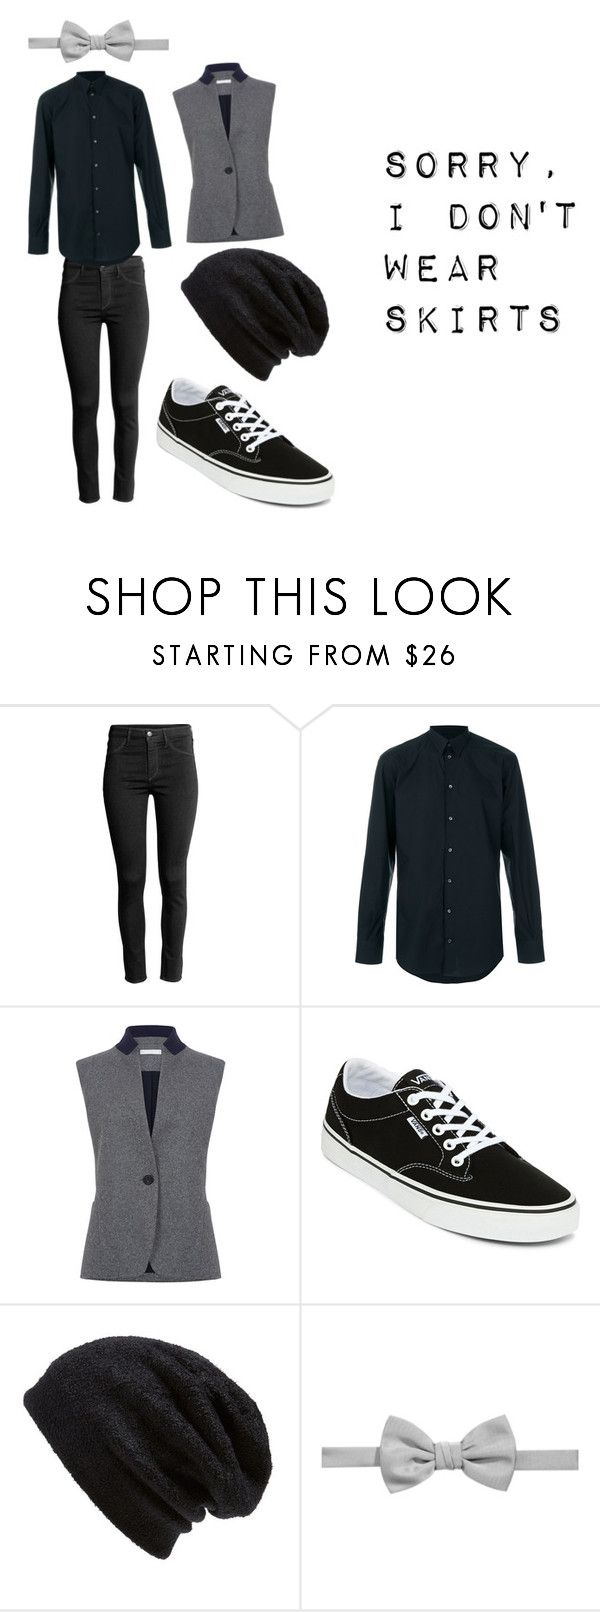 """Sorry, I Don't Wear Skirts"" by nightsirensss on Polyvore featuring Dolce&Gabbana, Atea Oceanie, Vans, Barefoot Dreams and Ryan Seacrest Distinction"